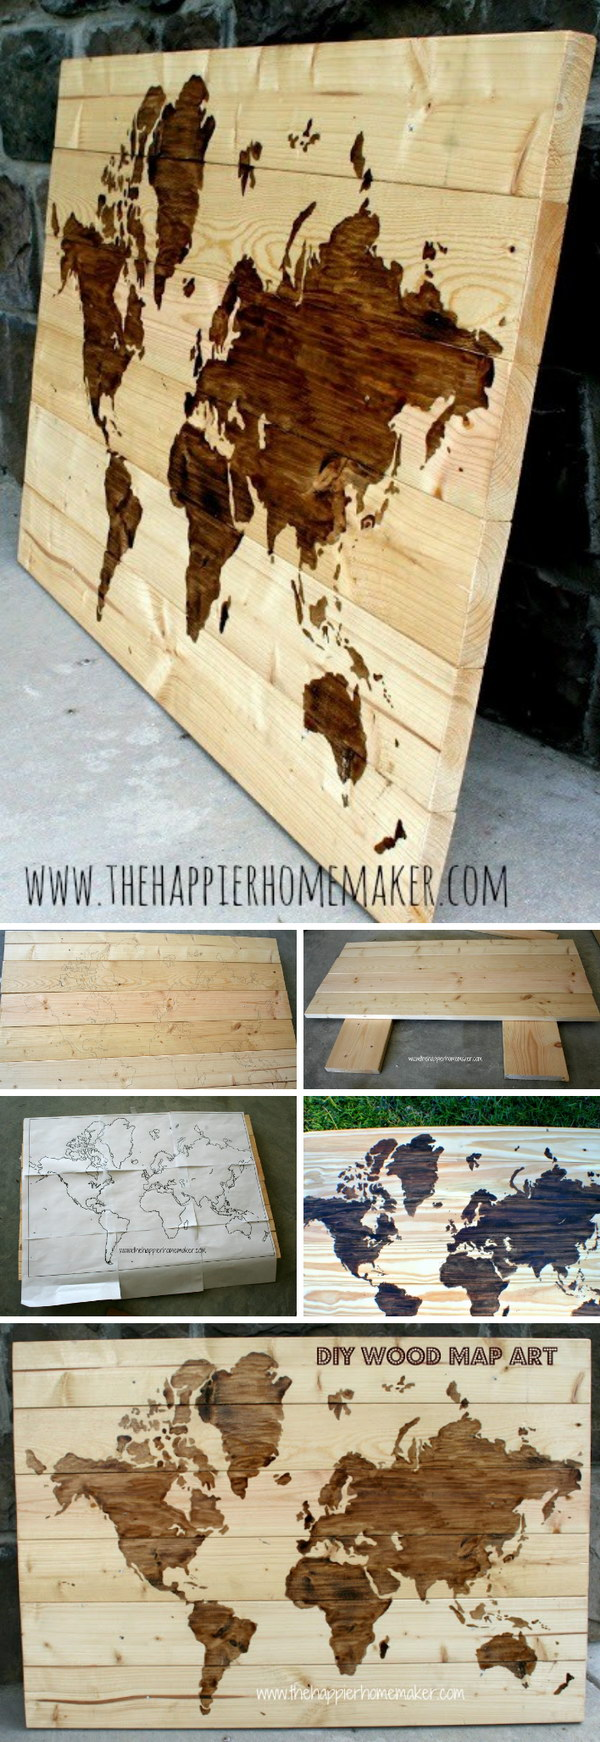 25 diy ideas tutorials for using wood stains 2017 diy wooden world map art gumiabroncs Images